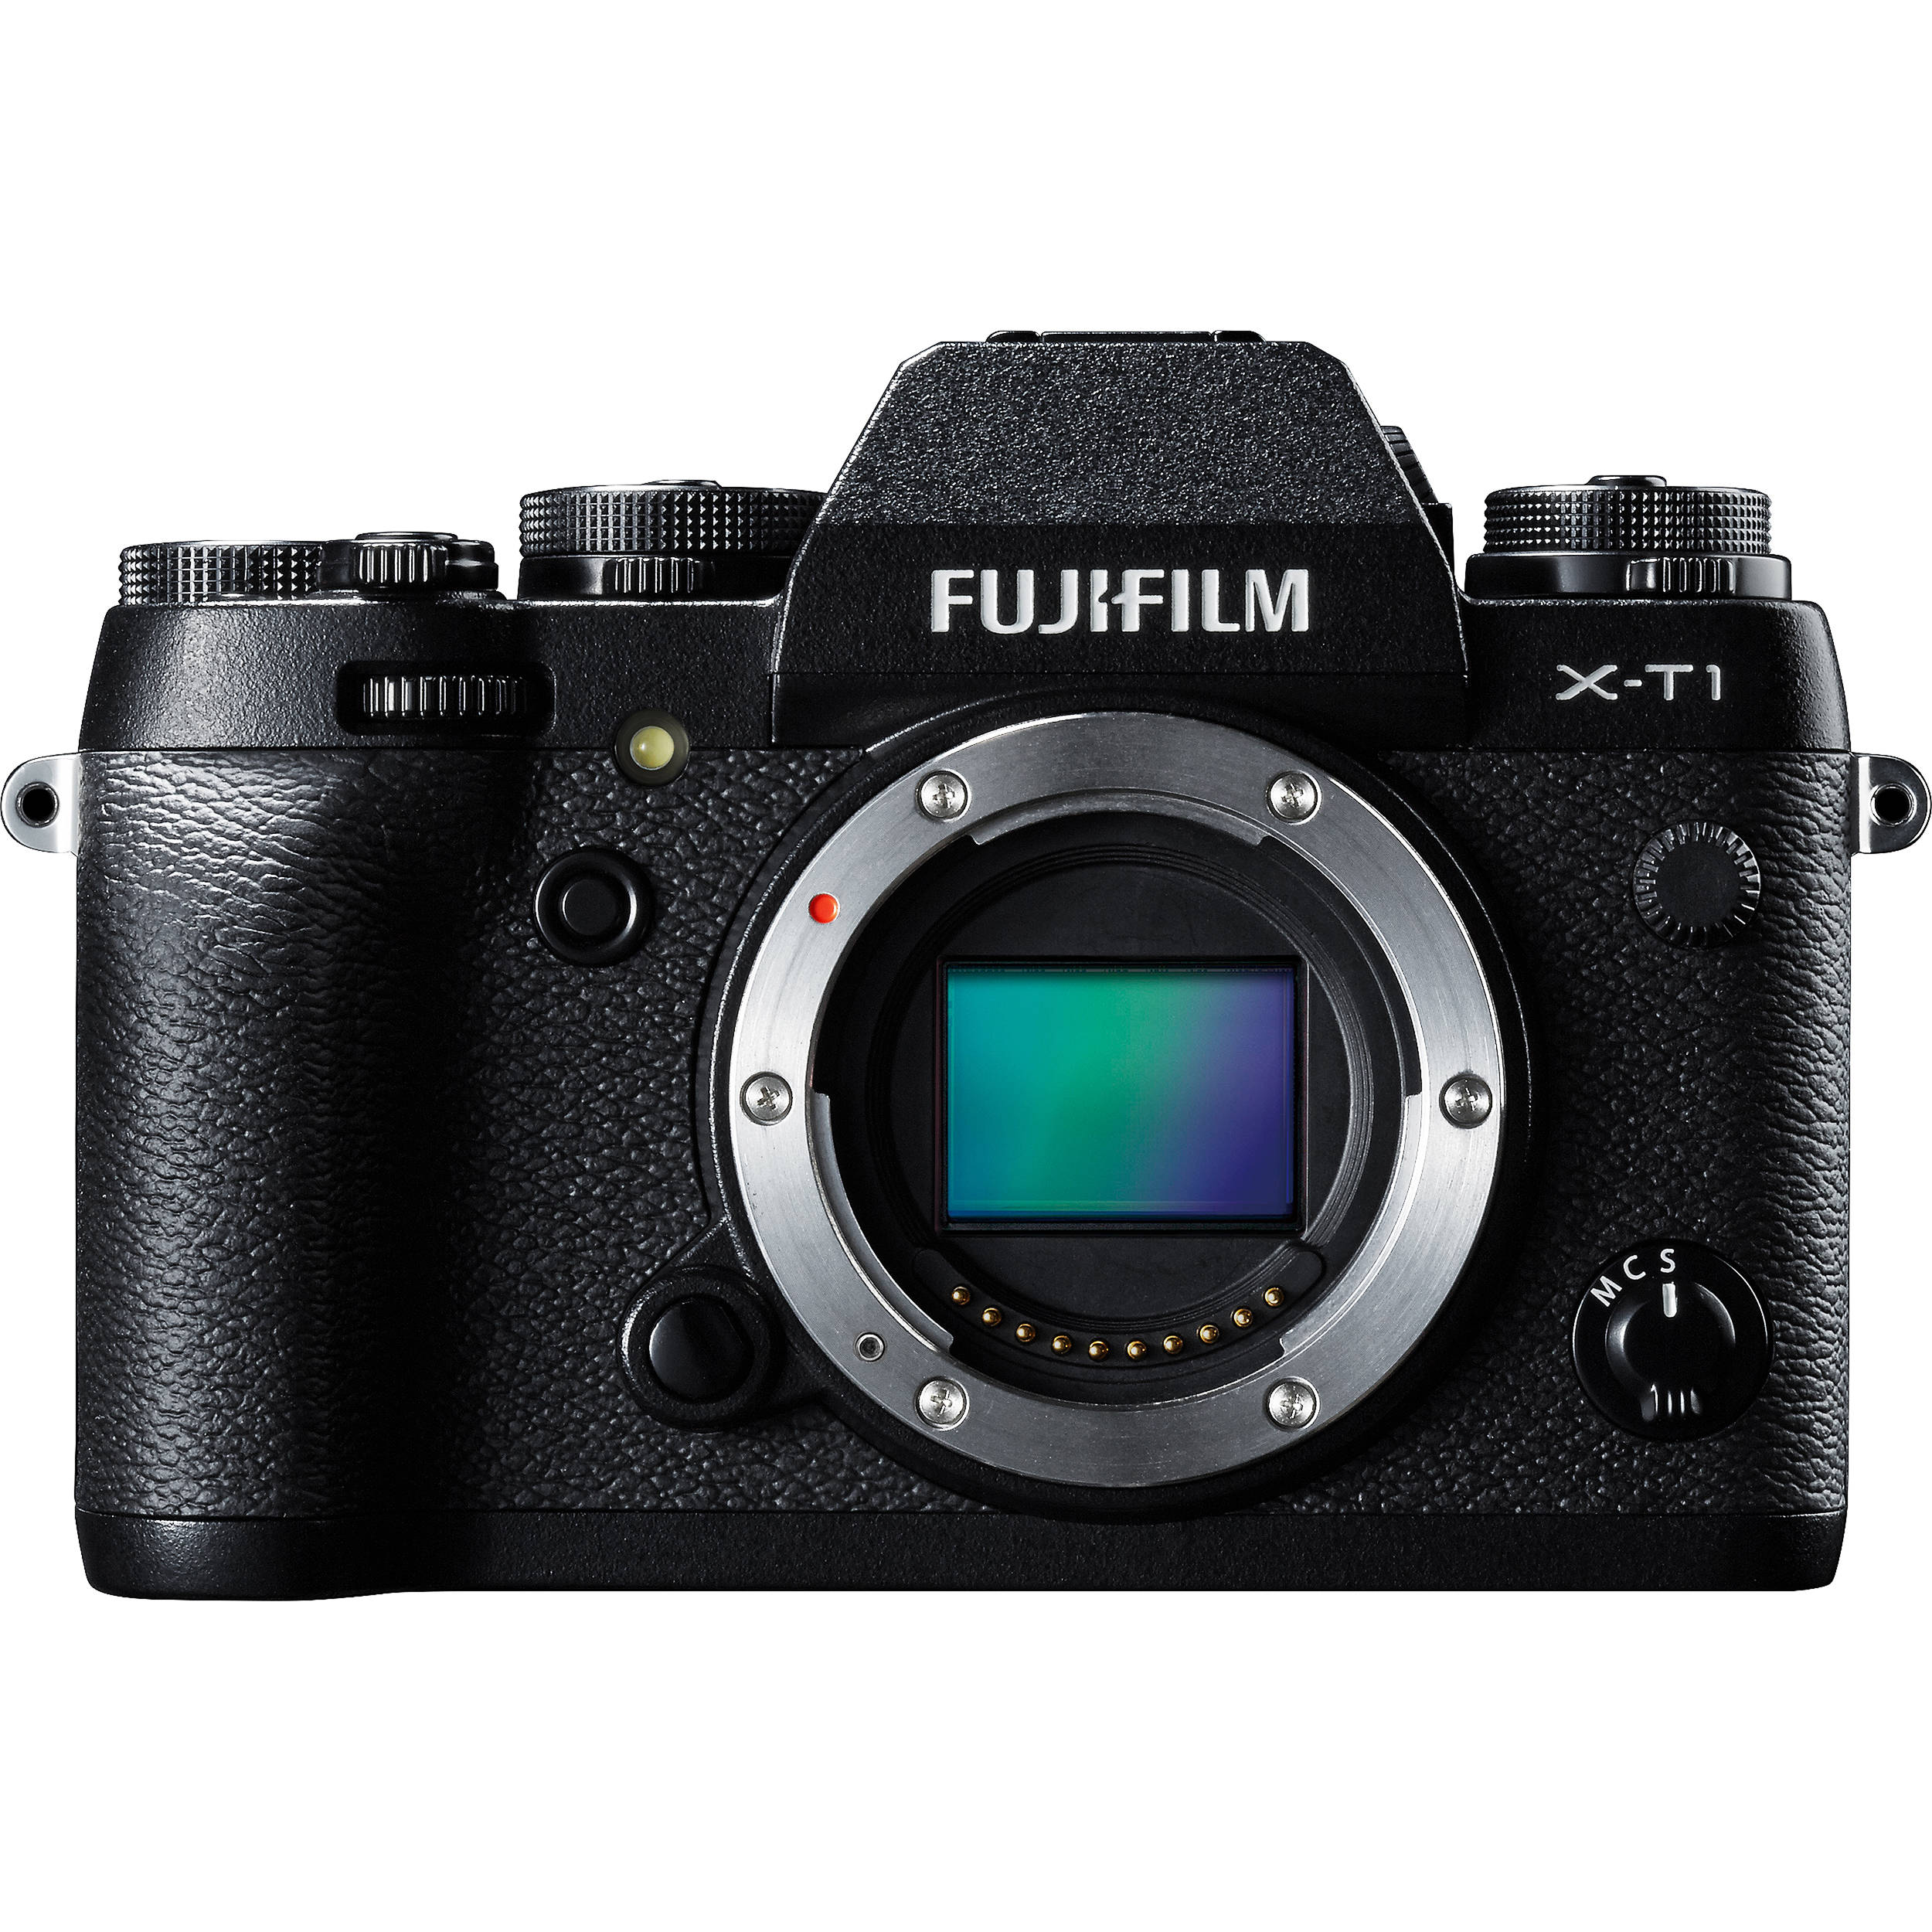 Fujifilm XT1 Mirrorless Digital Camera 16421452 XT1 Body B&H Photo